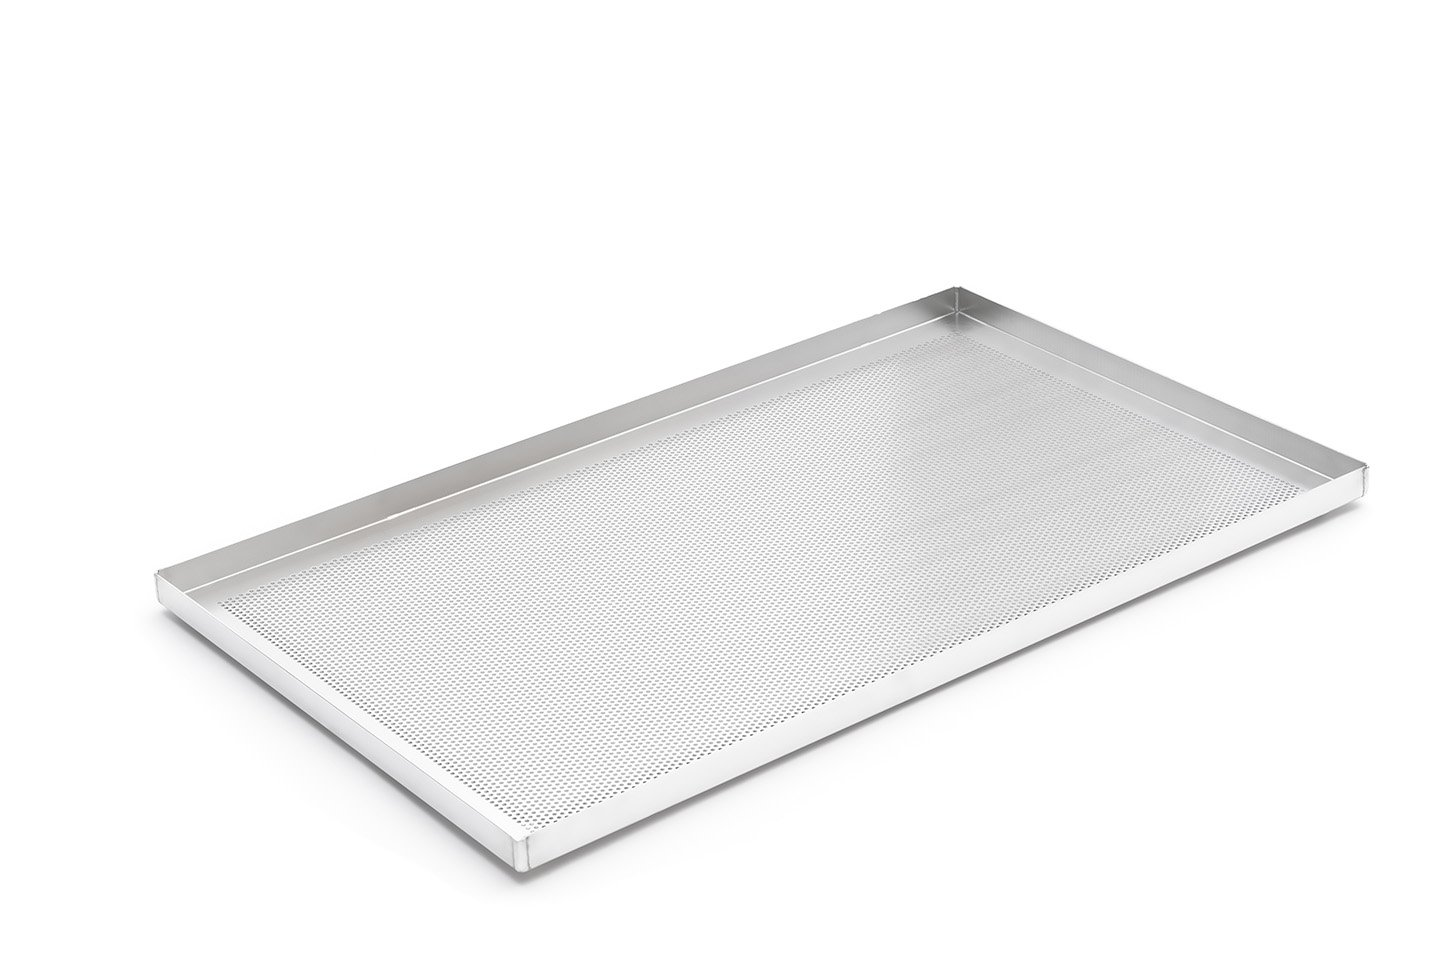 4-sided Perforated Baking Tray – AMERICOAT® Coating